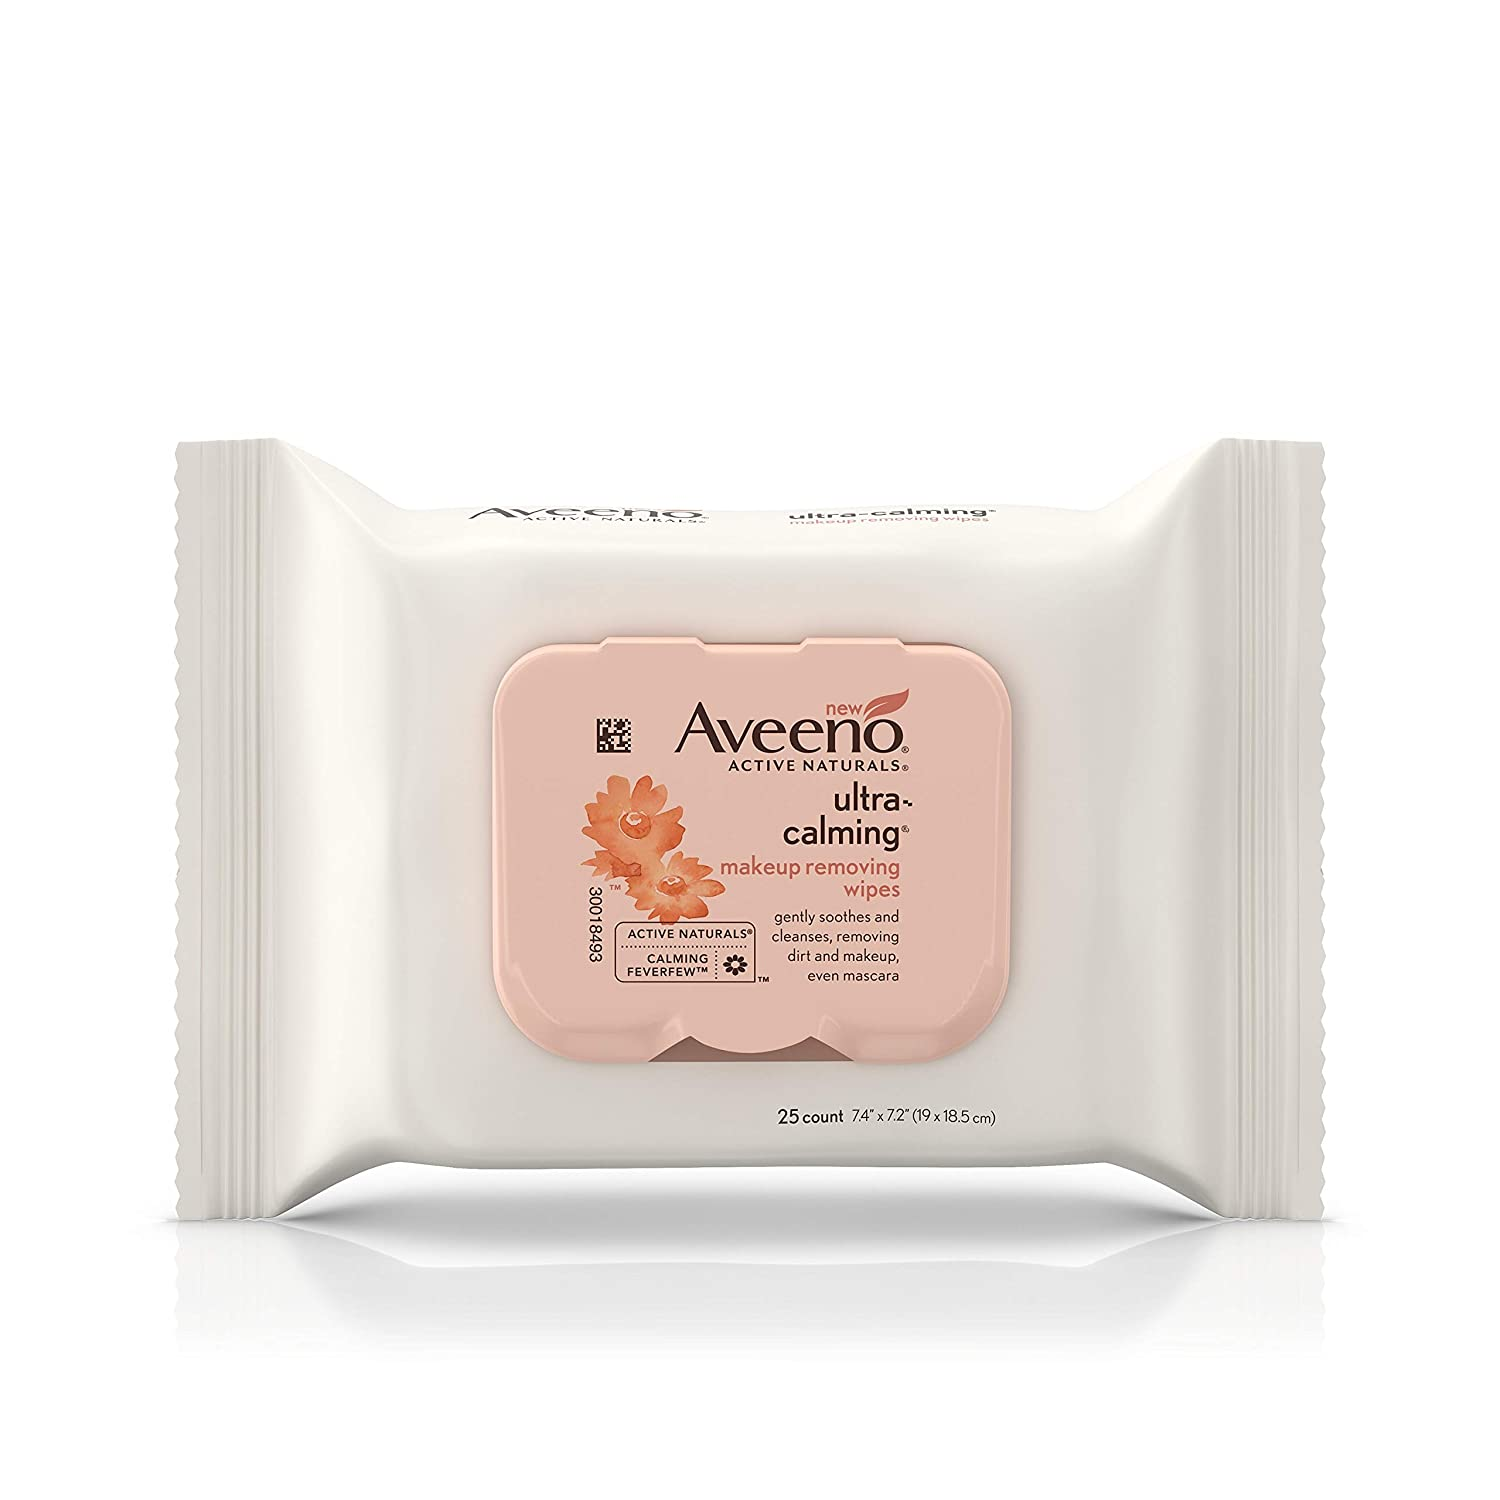 Aveeno Ultra-Calming Cleansing Makeup Removing Wipes, 25 Count usa-iiu-tm25